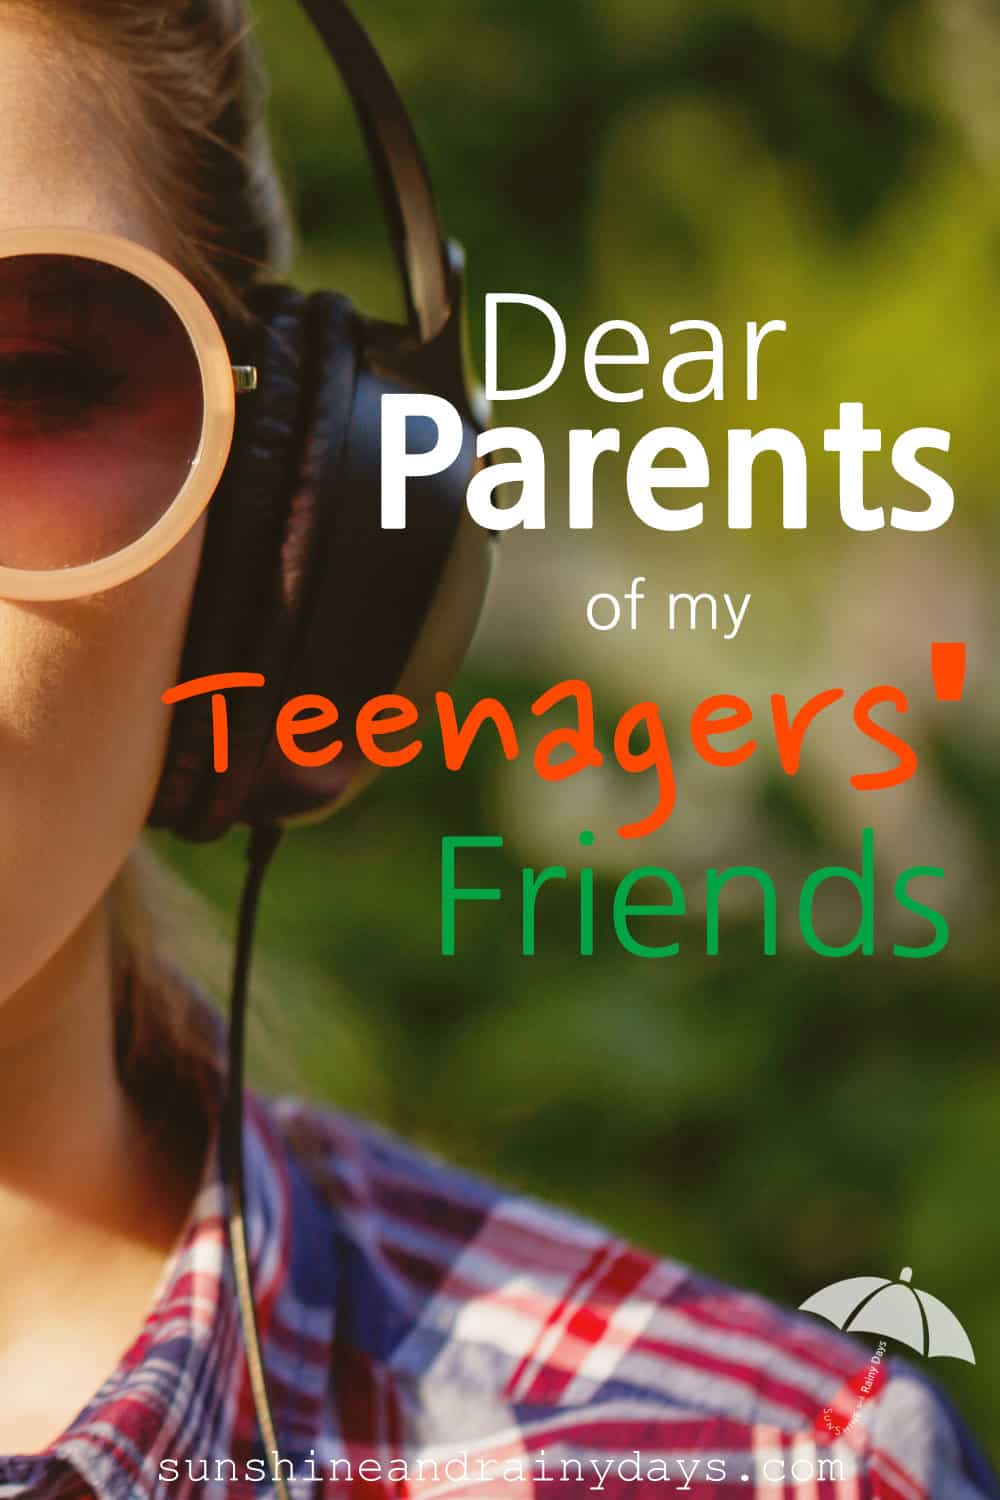 Girl with bubble gum and the words: Dear Parents Of My Teenagers' Friends